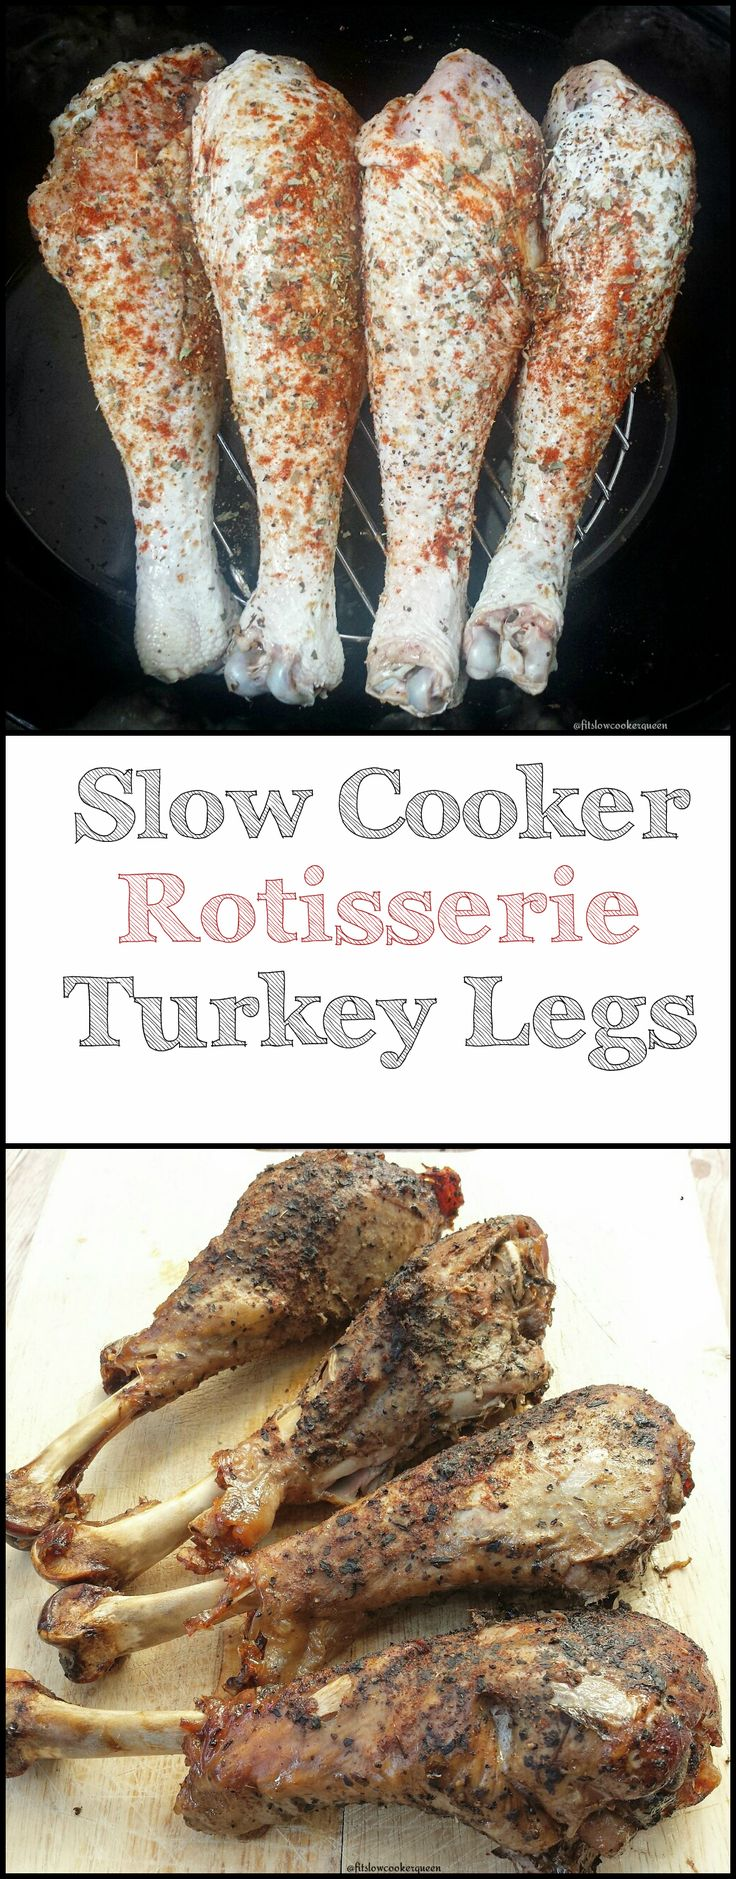 It doesn't need to be Thanksgiving for you to appreciate this easy yet flavorful slow cooker rotisserie turkey leg recipe.